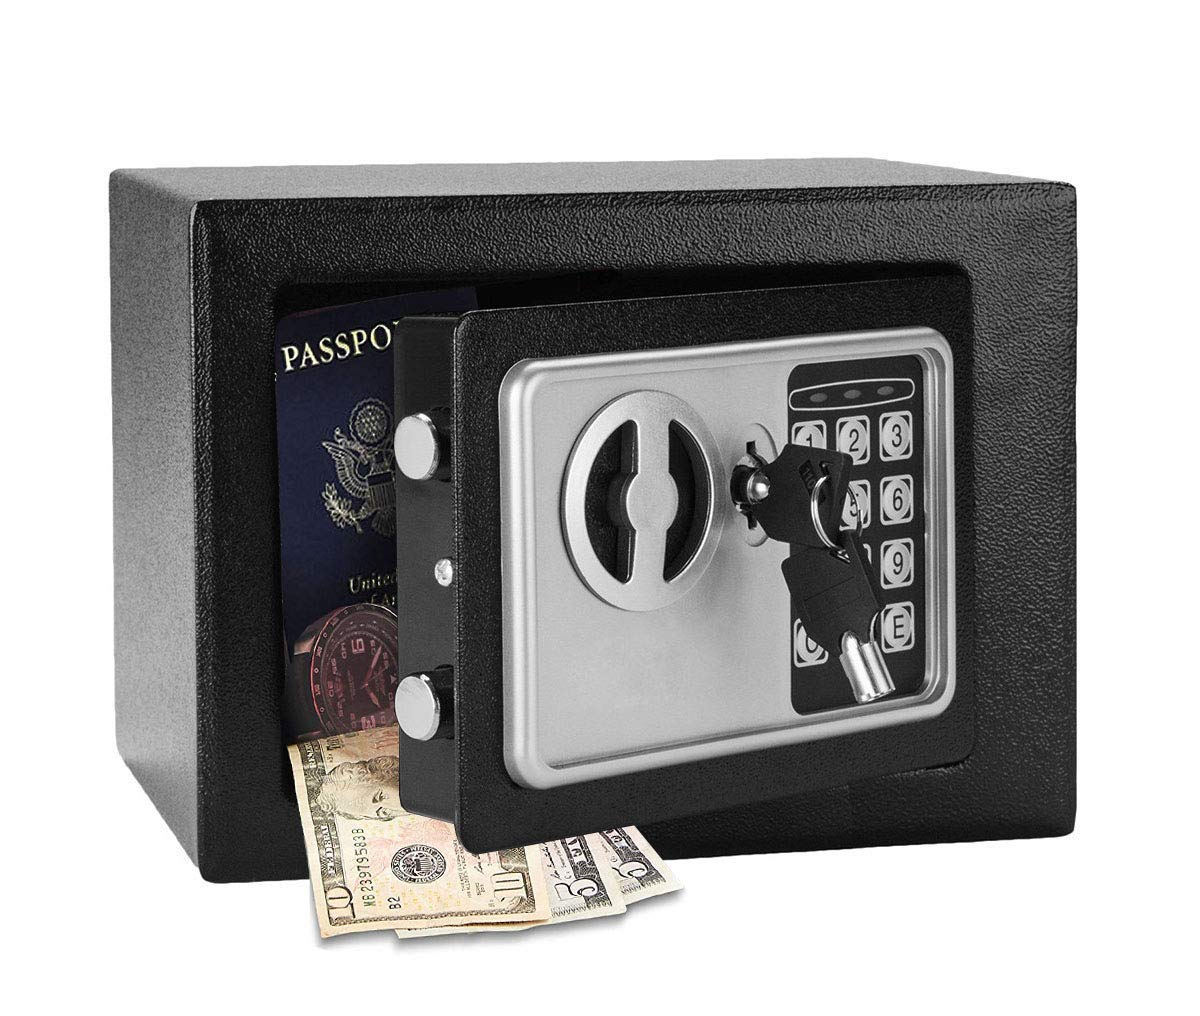 civilys Small Safe Box, Safes and Lock Boxes, Digital Safe Box for Money Gun Jewelry Cash, US Stock (Black) by civilys